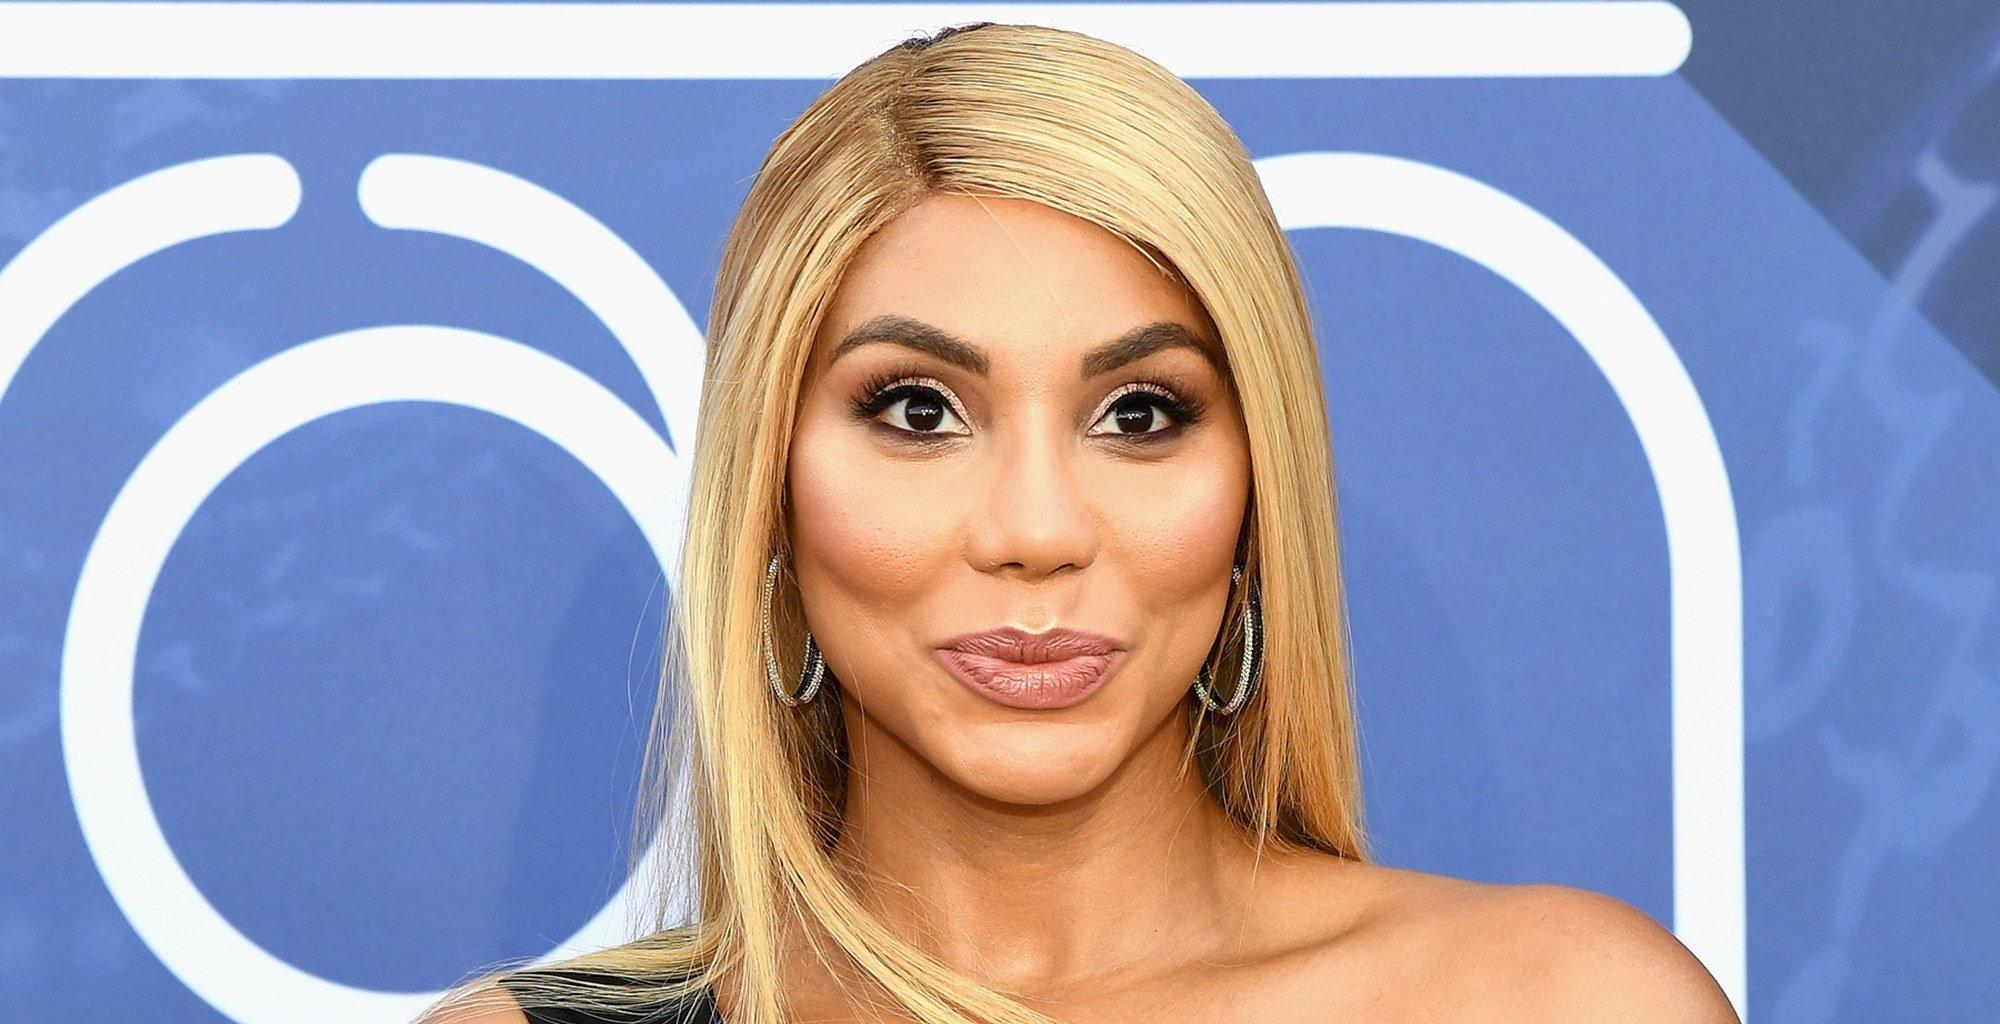 Tamar Braxton Lands A Huge New TV Gig And Some Fans Are Confused